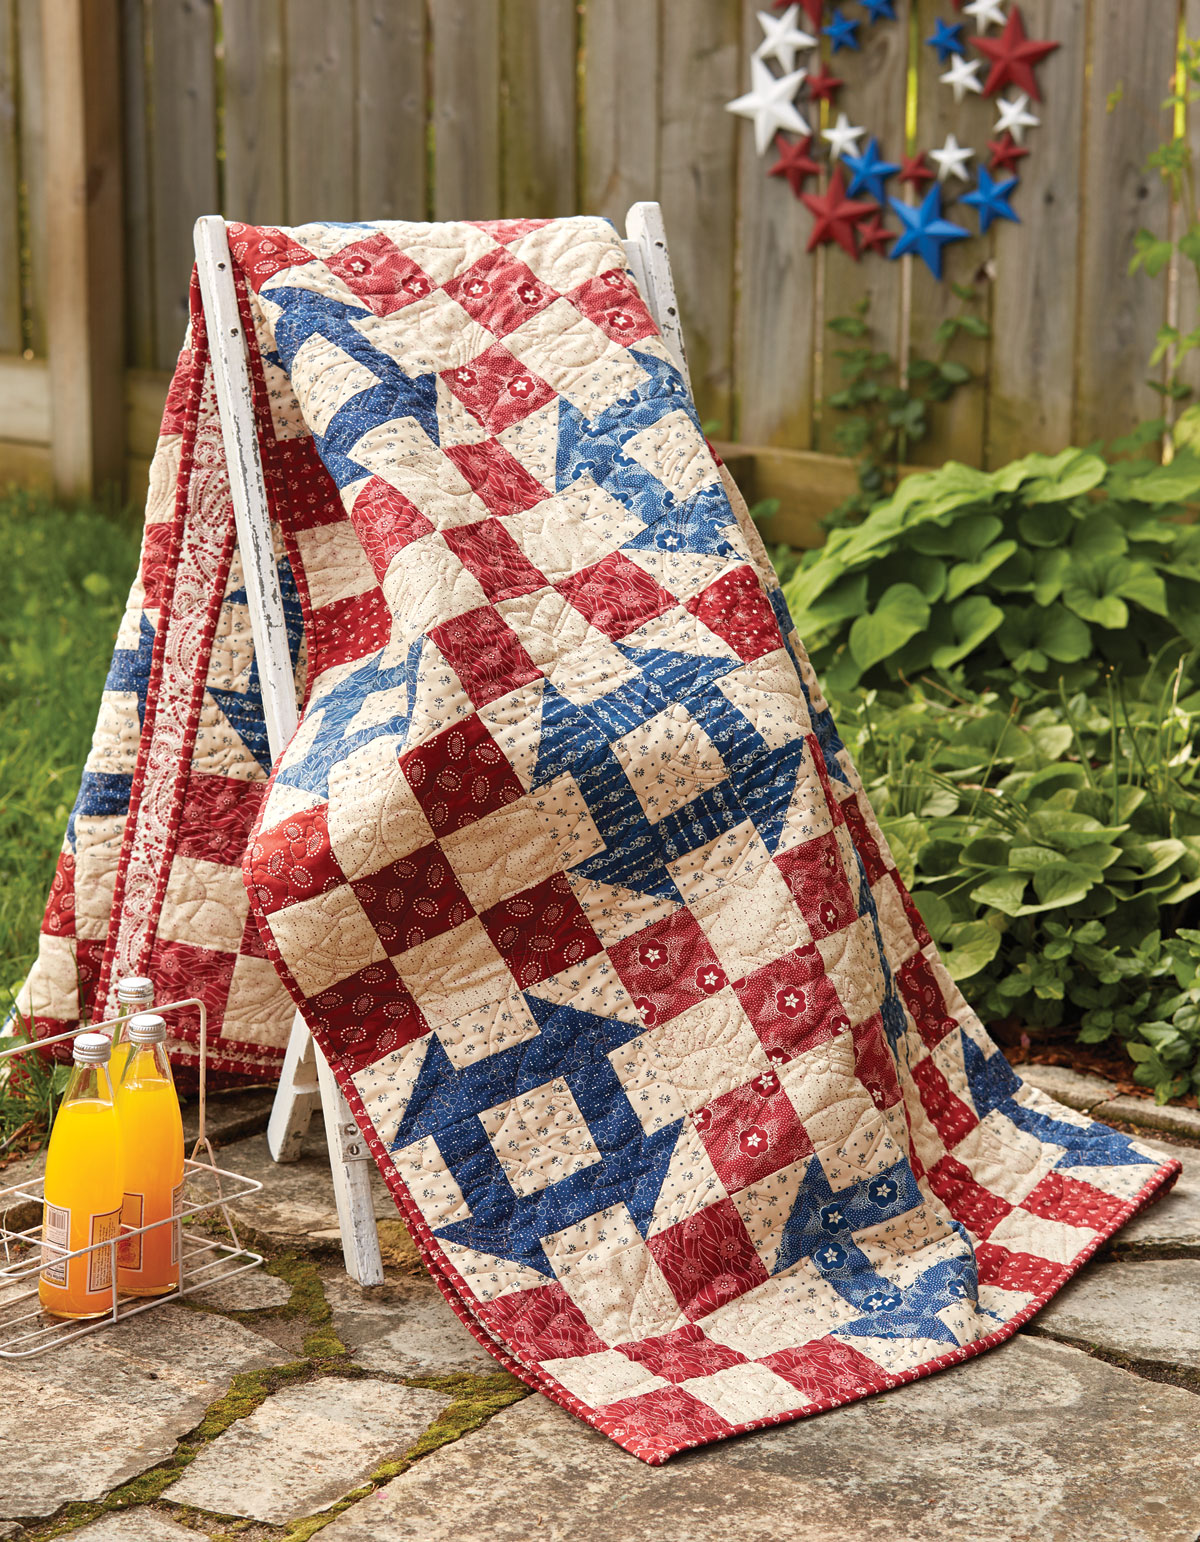 House Divided Quilt - Fons & Porter - The Quilting Company : fons and porter quilt kits - Adamdwight.com